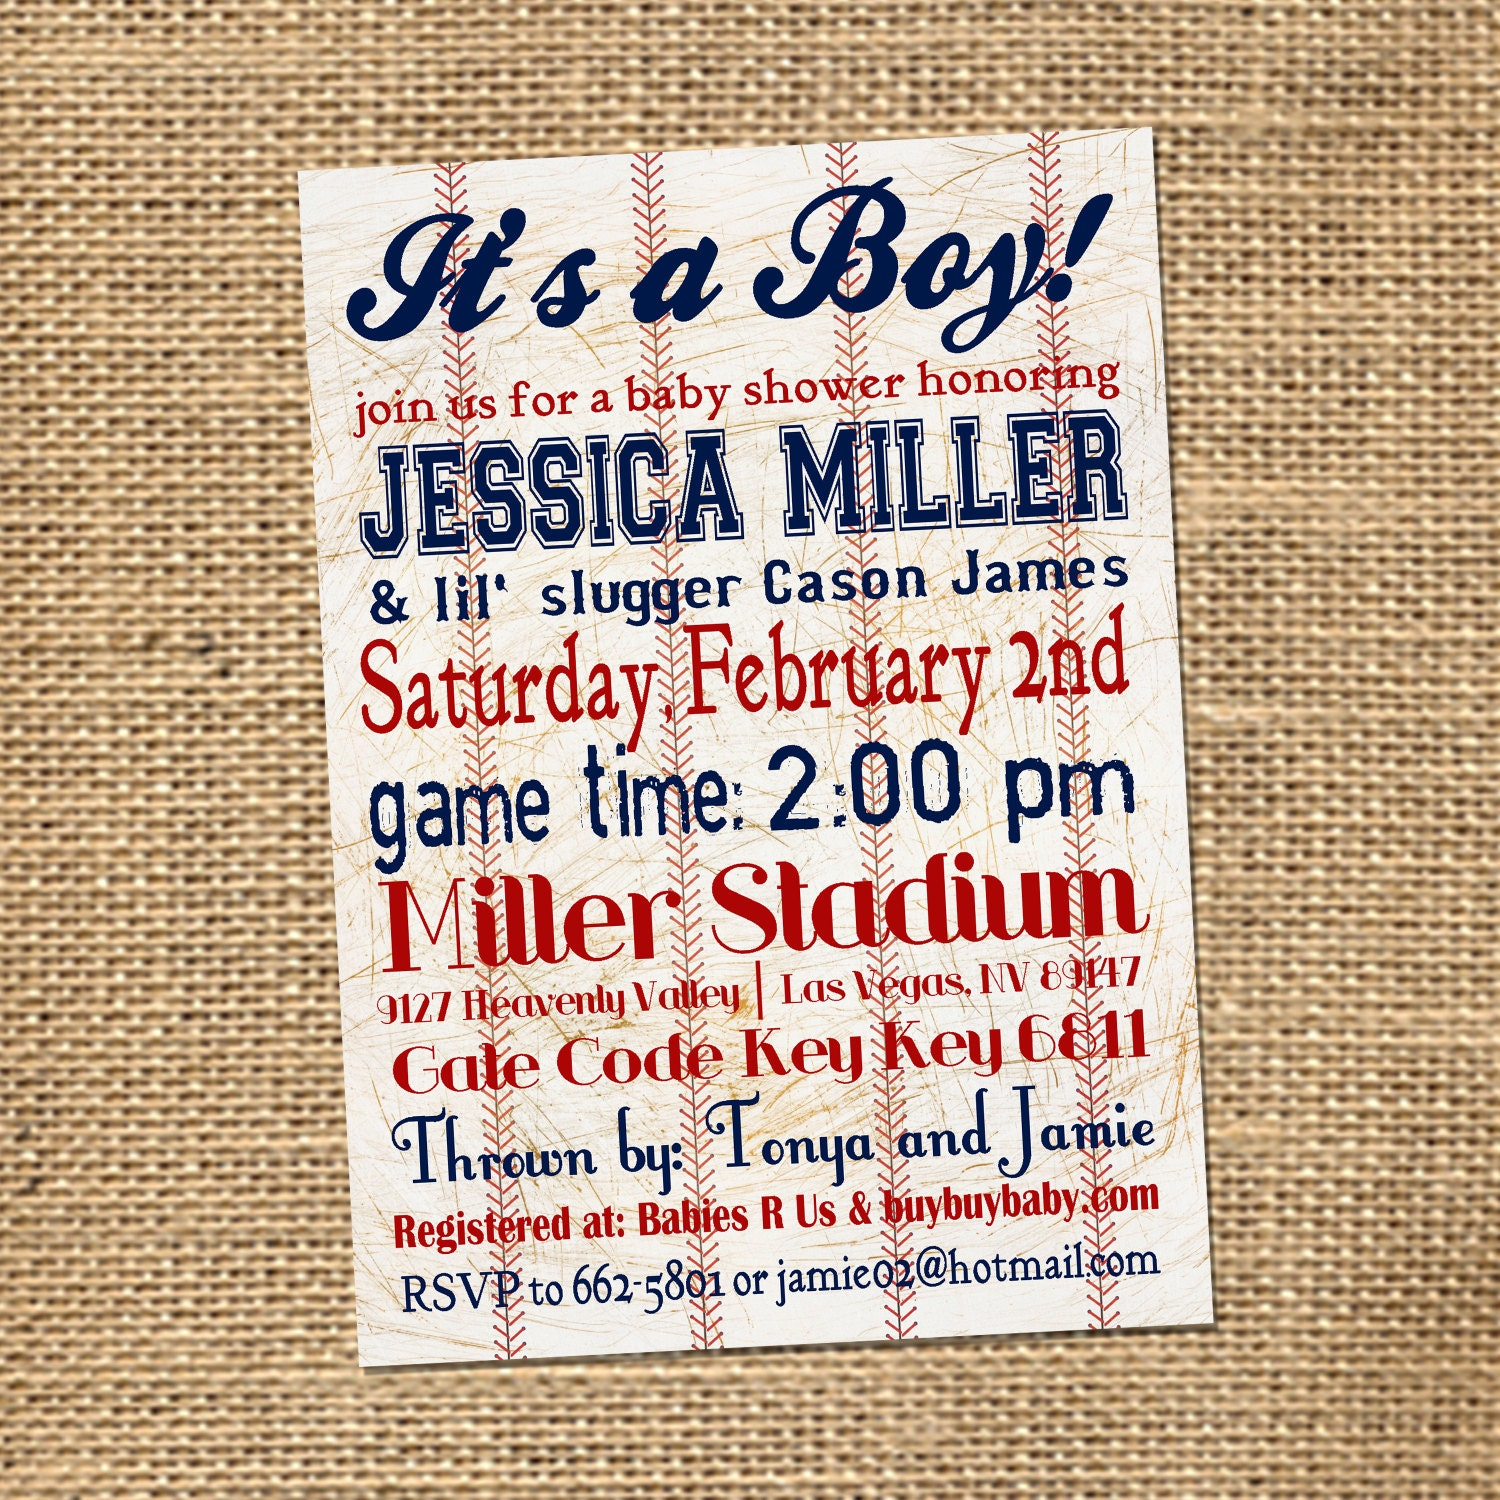 baseball themed baby shower invitations is the best ideas you have to choose for invitation example